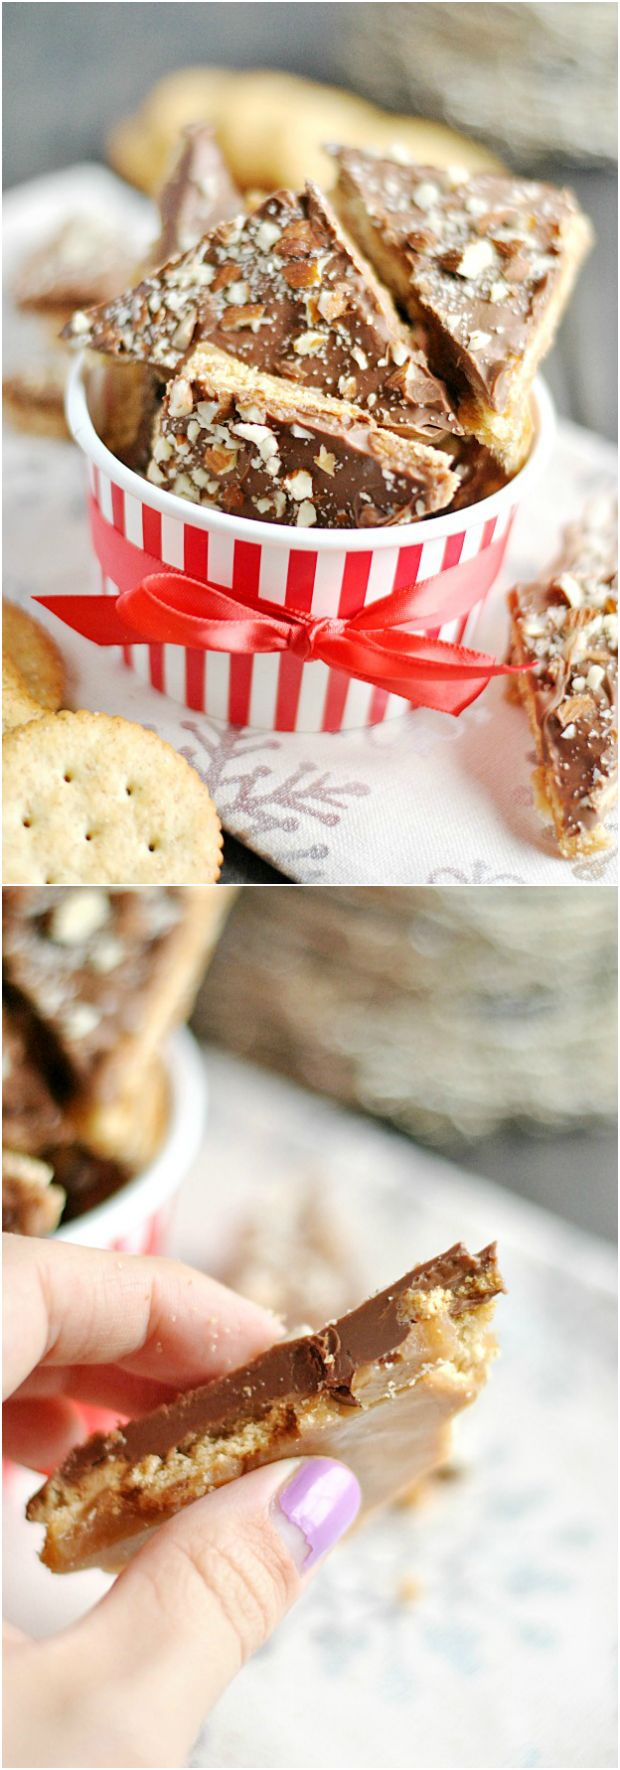 Ritz Cracker Toffee is so easy to make and is always a hit with friends!